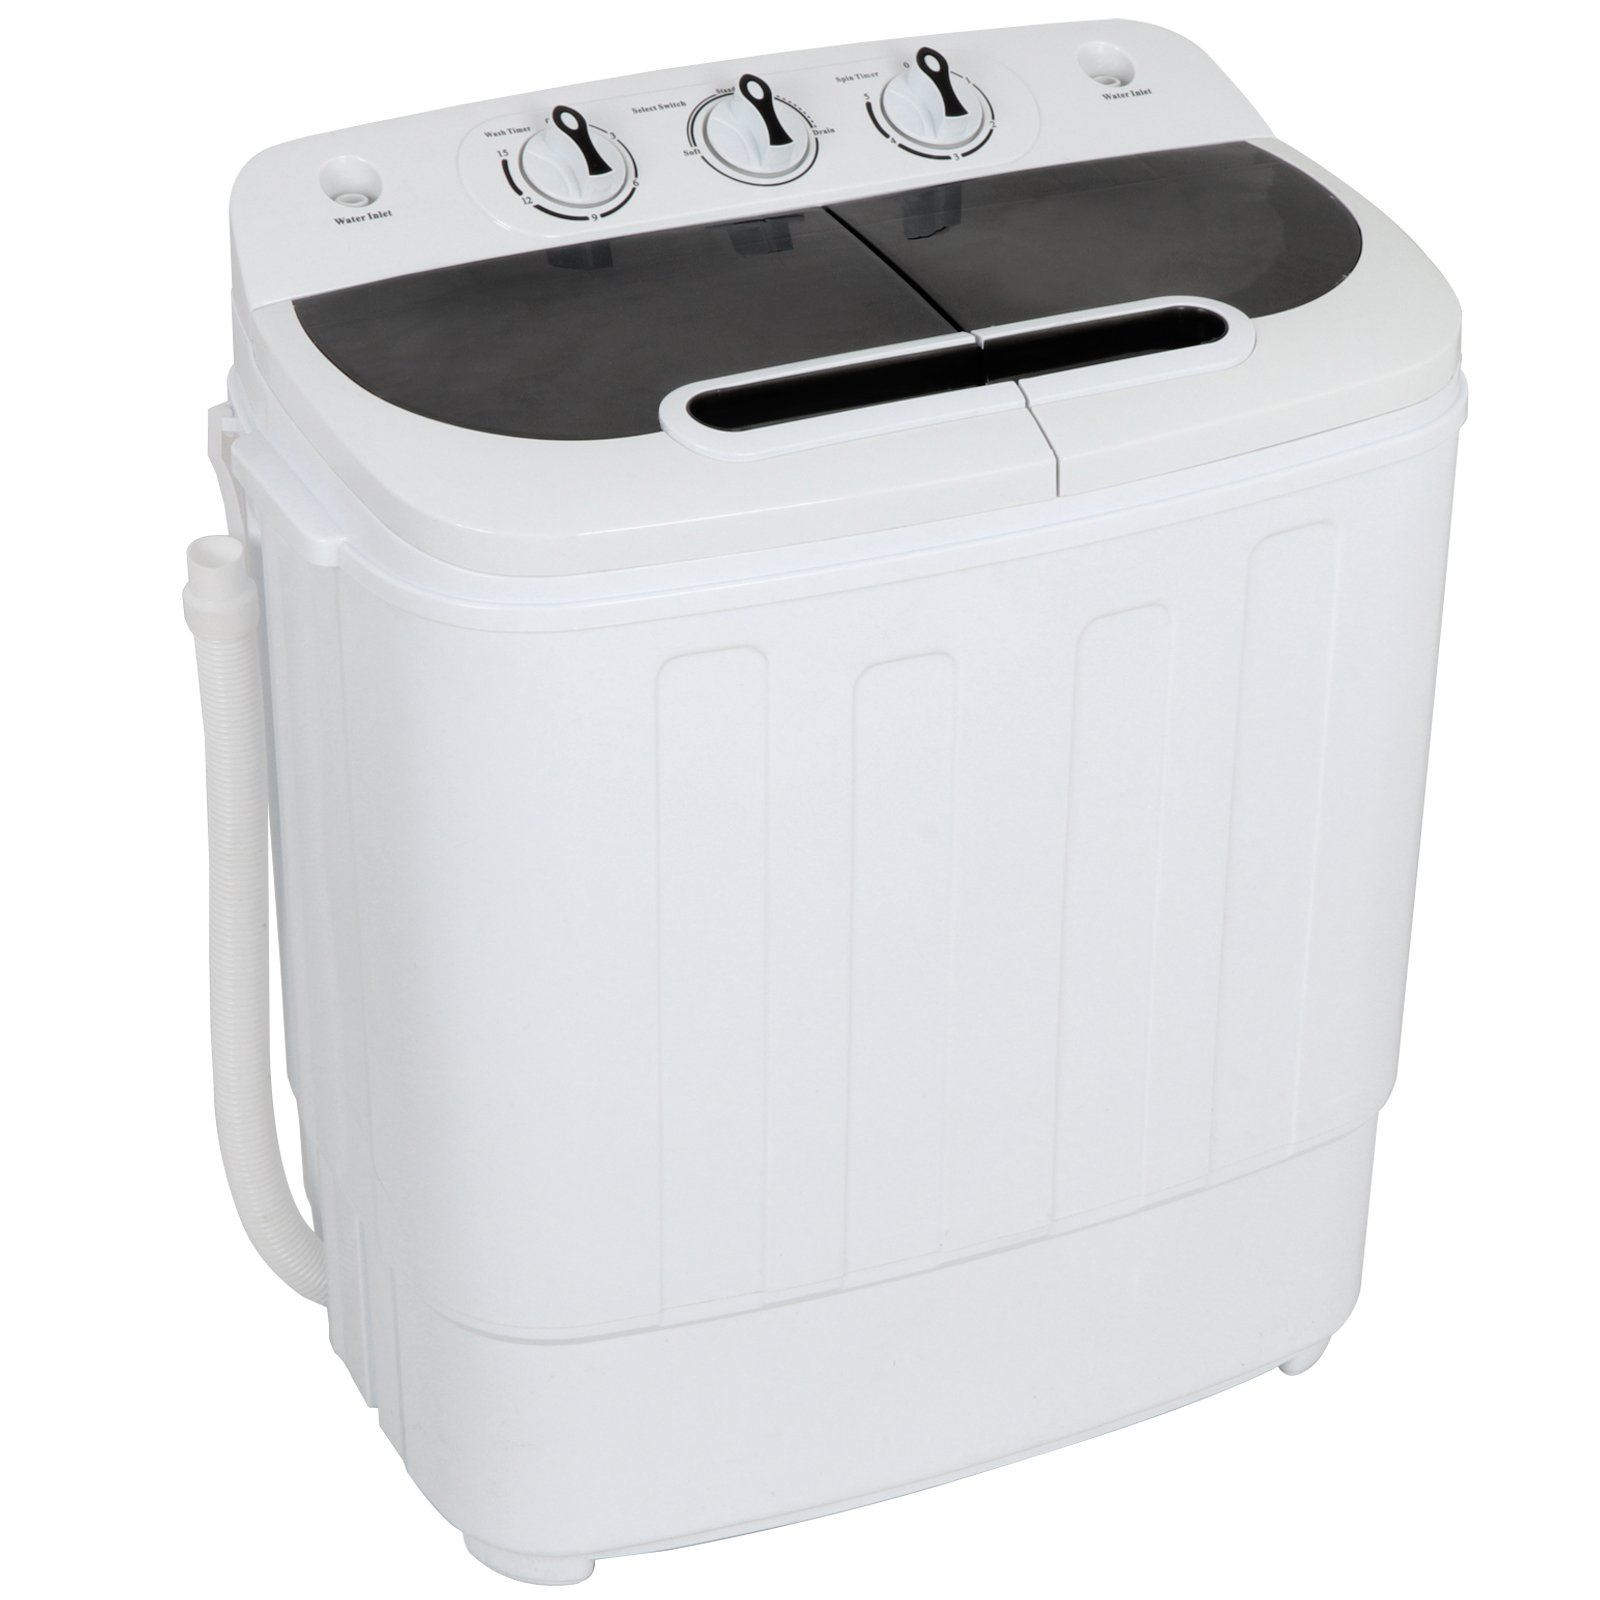 ZENSTYLE Compact Mini Twin Tub Top Load Washing Machine w/Washer Spinner, Built-In Gravity Pump, 13lbs Capacity, 5.74 FT Power Cord Included